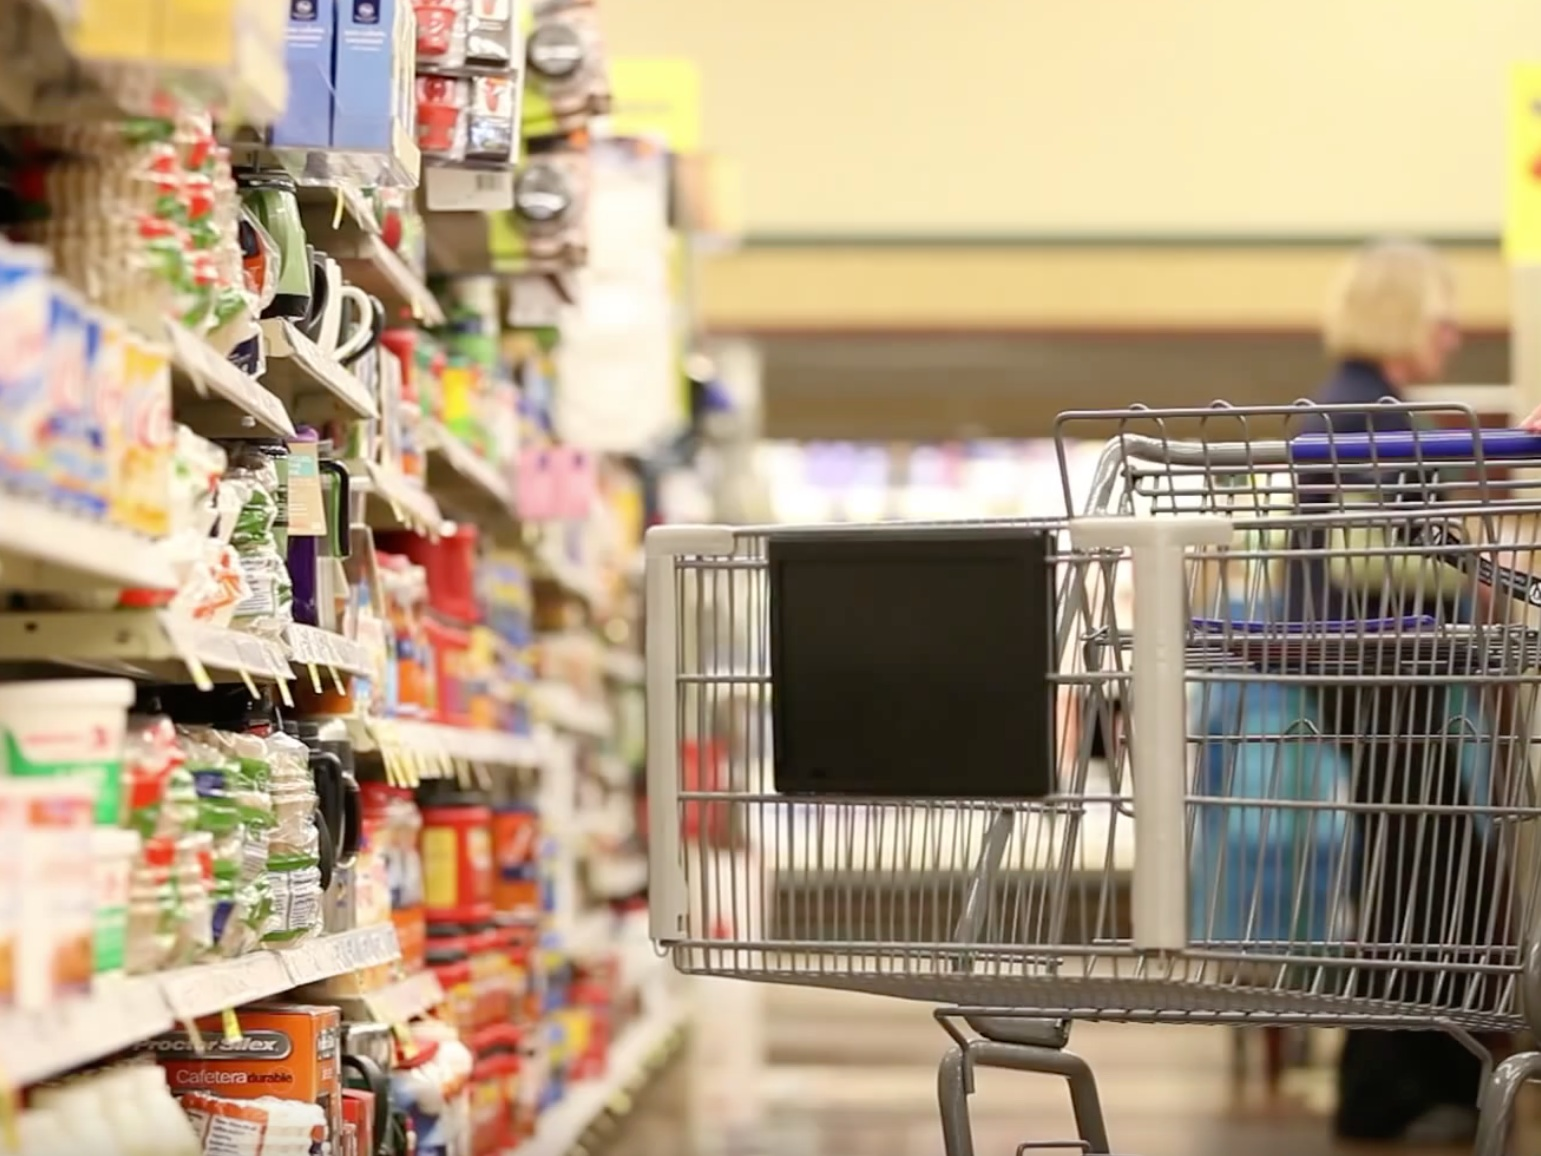 Pediatric Injuries Associated with Shopping Carts in the US – NCH*